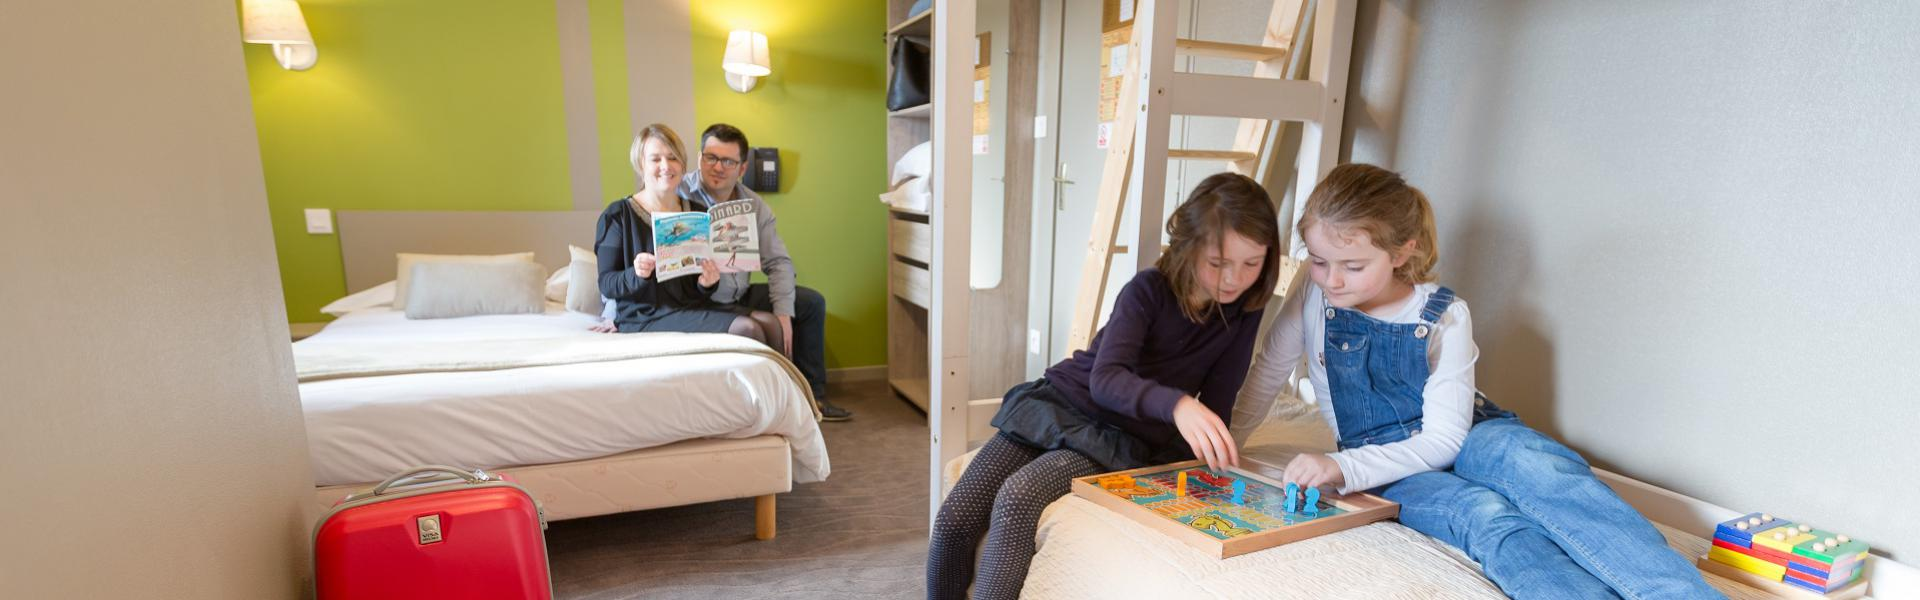 Family room hotel les alizes dinard brittany